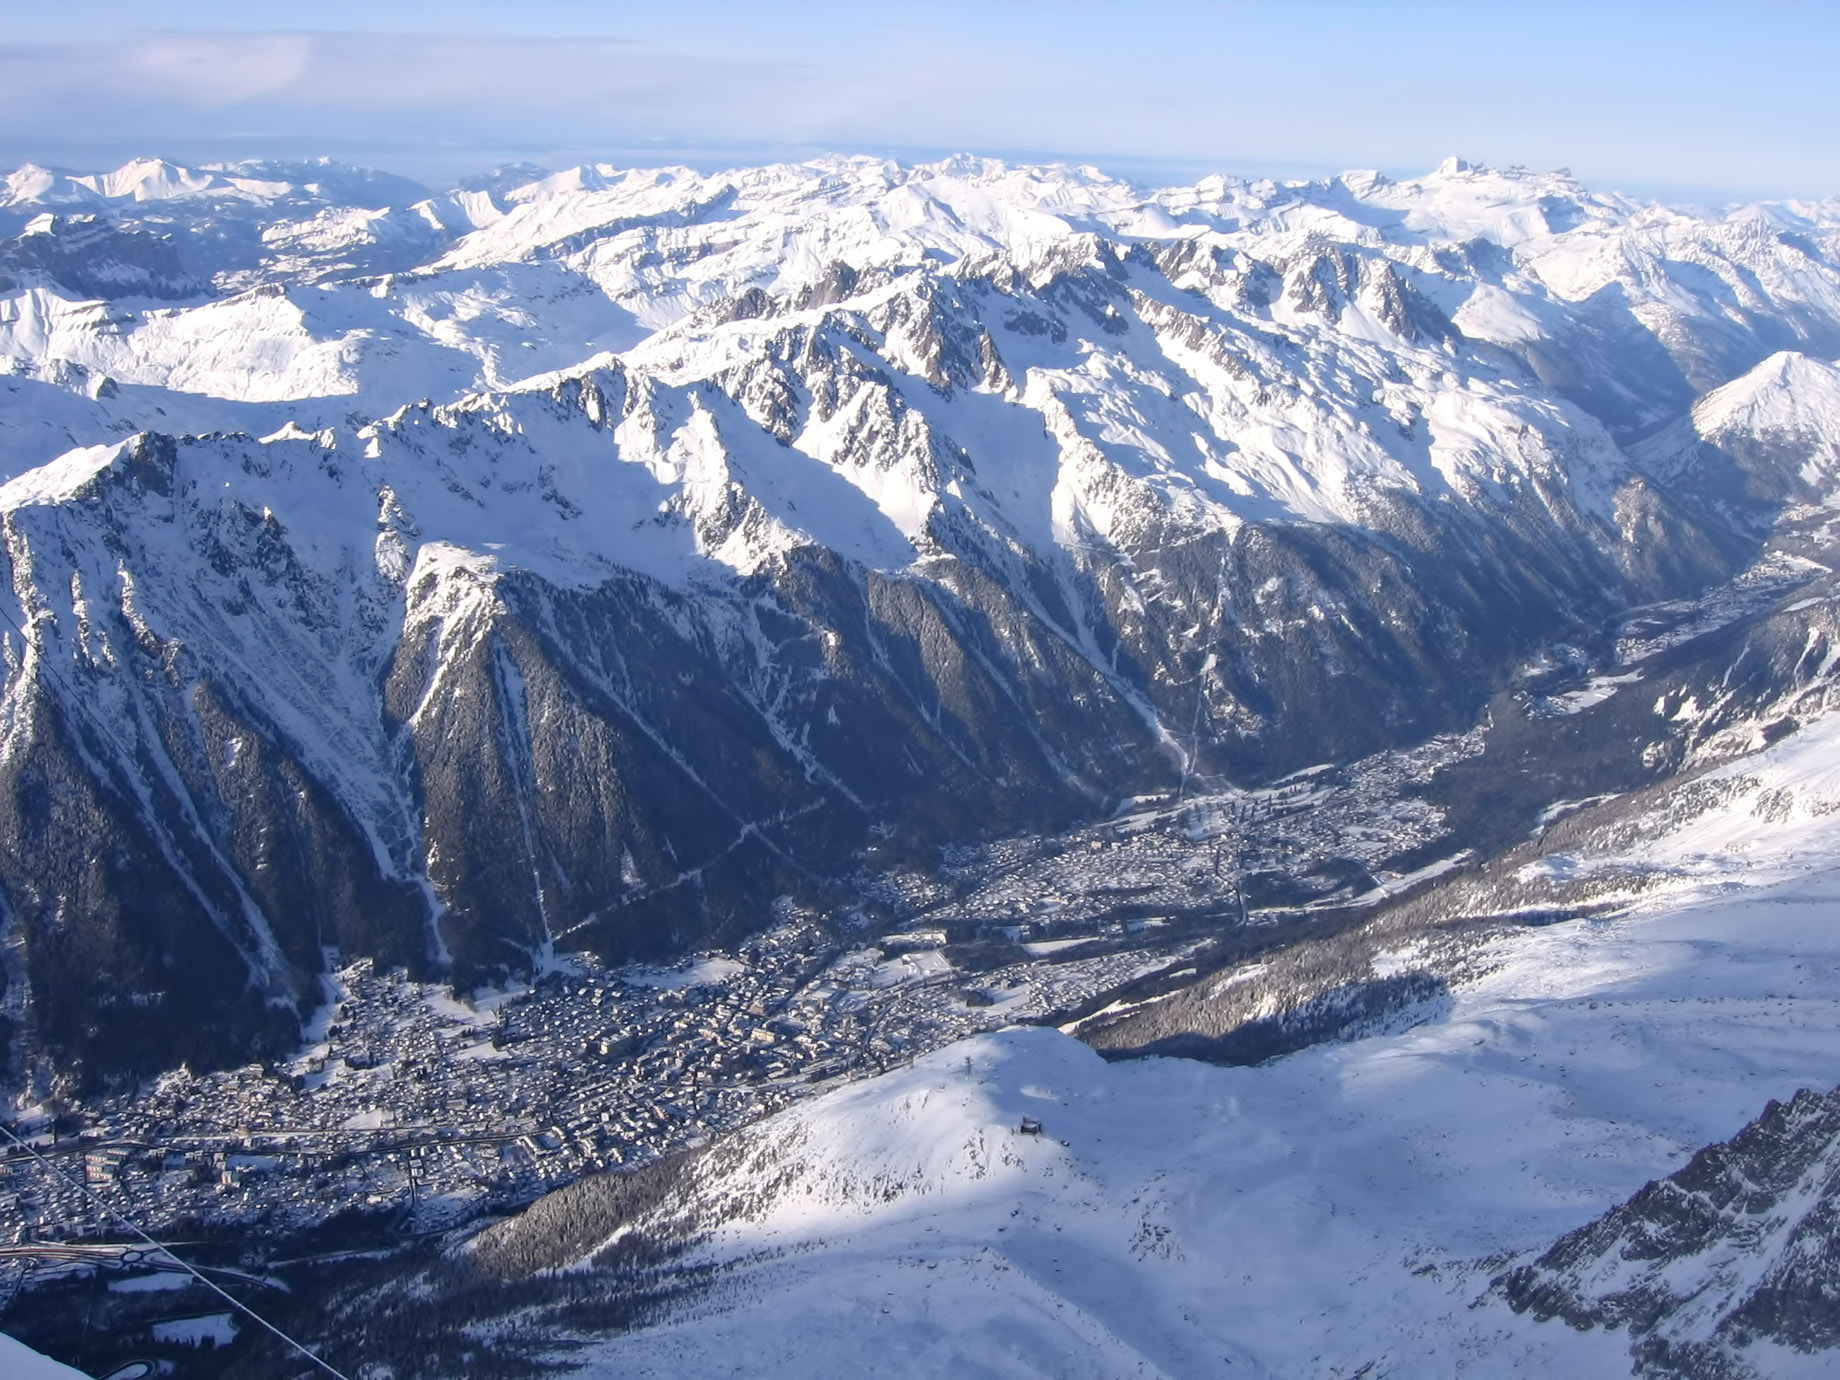 Chamonix - French Alps Mountain Resort - An Exclusive Très Chic Luxury Winter Paradise